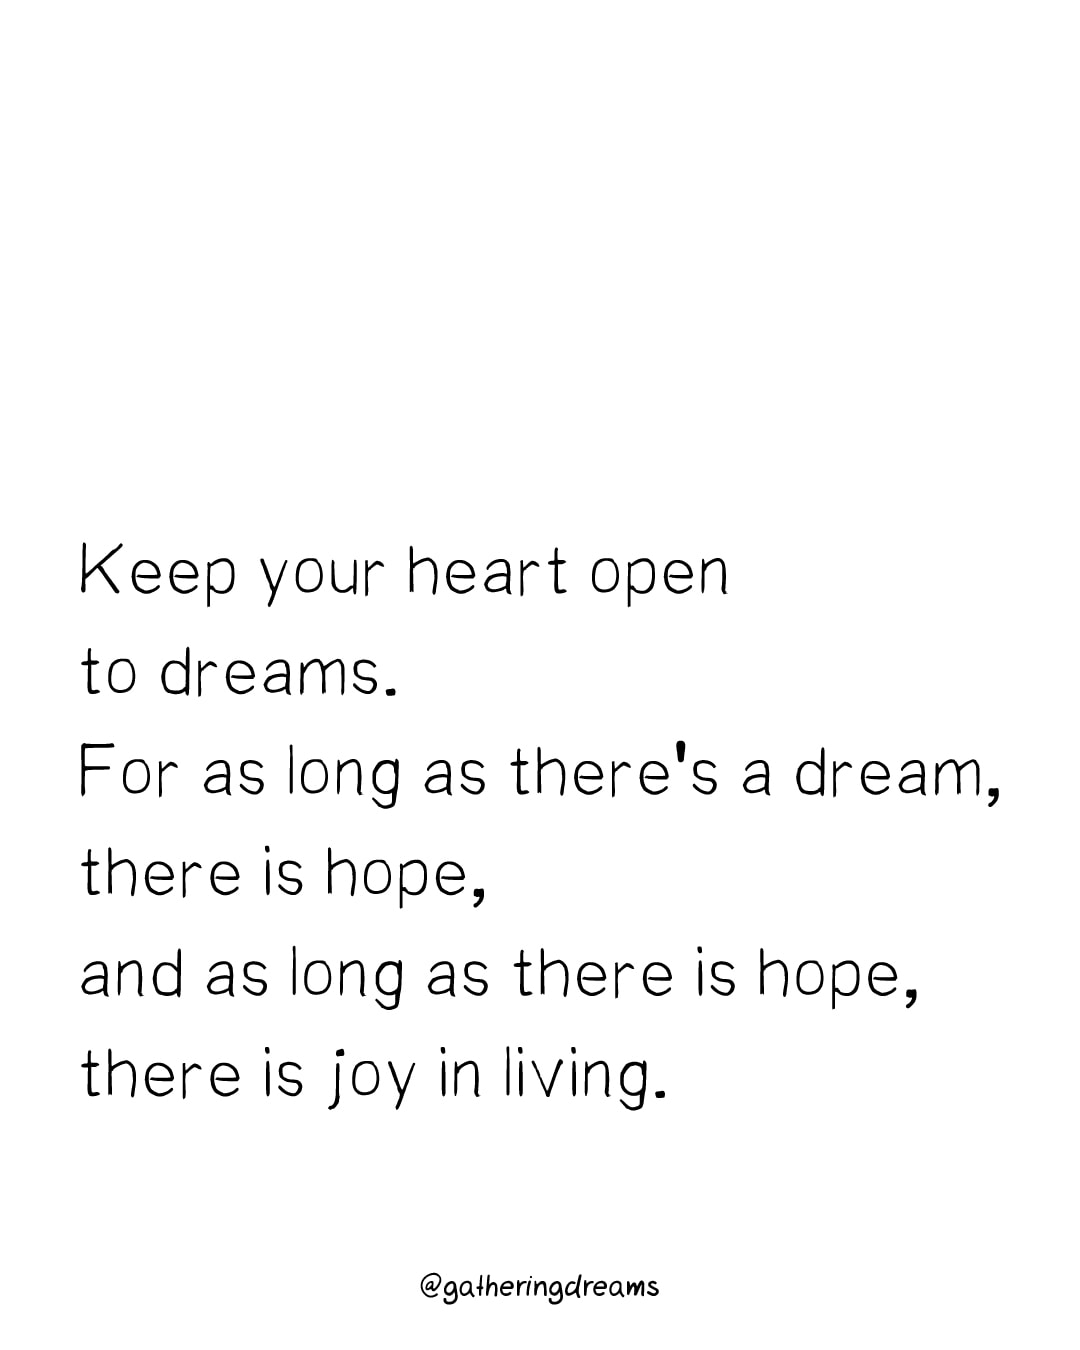 """Keep your heart open to dreams. For as long as there's a dream, there is hope, and as long as there is hope, there is joy in living."" Anonymus - The best dream quotes, inspirational quotes and motivational quotes of all times #inspiration #inspirationalquotes #motivationalquotes #dreams"